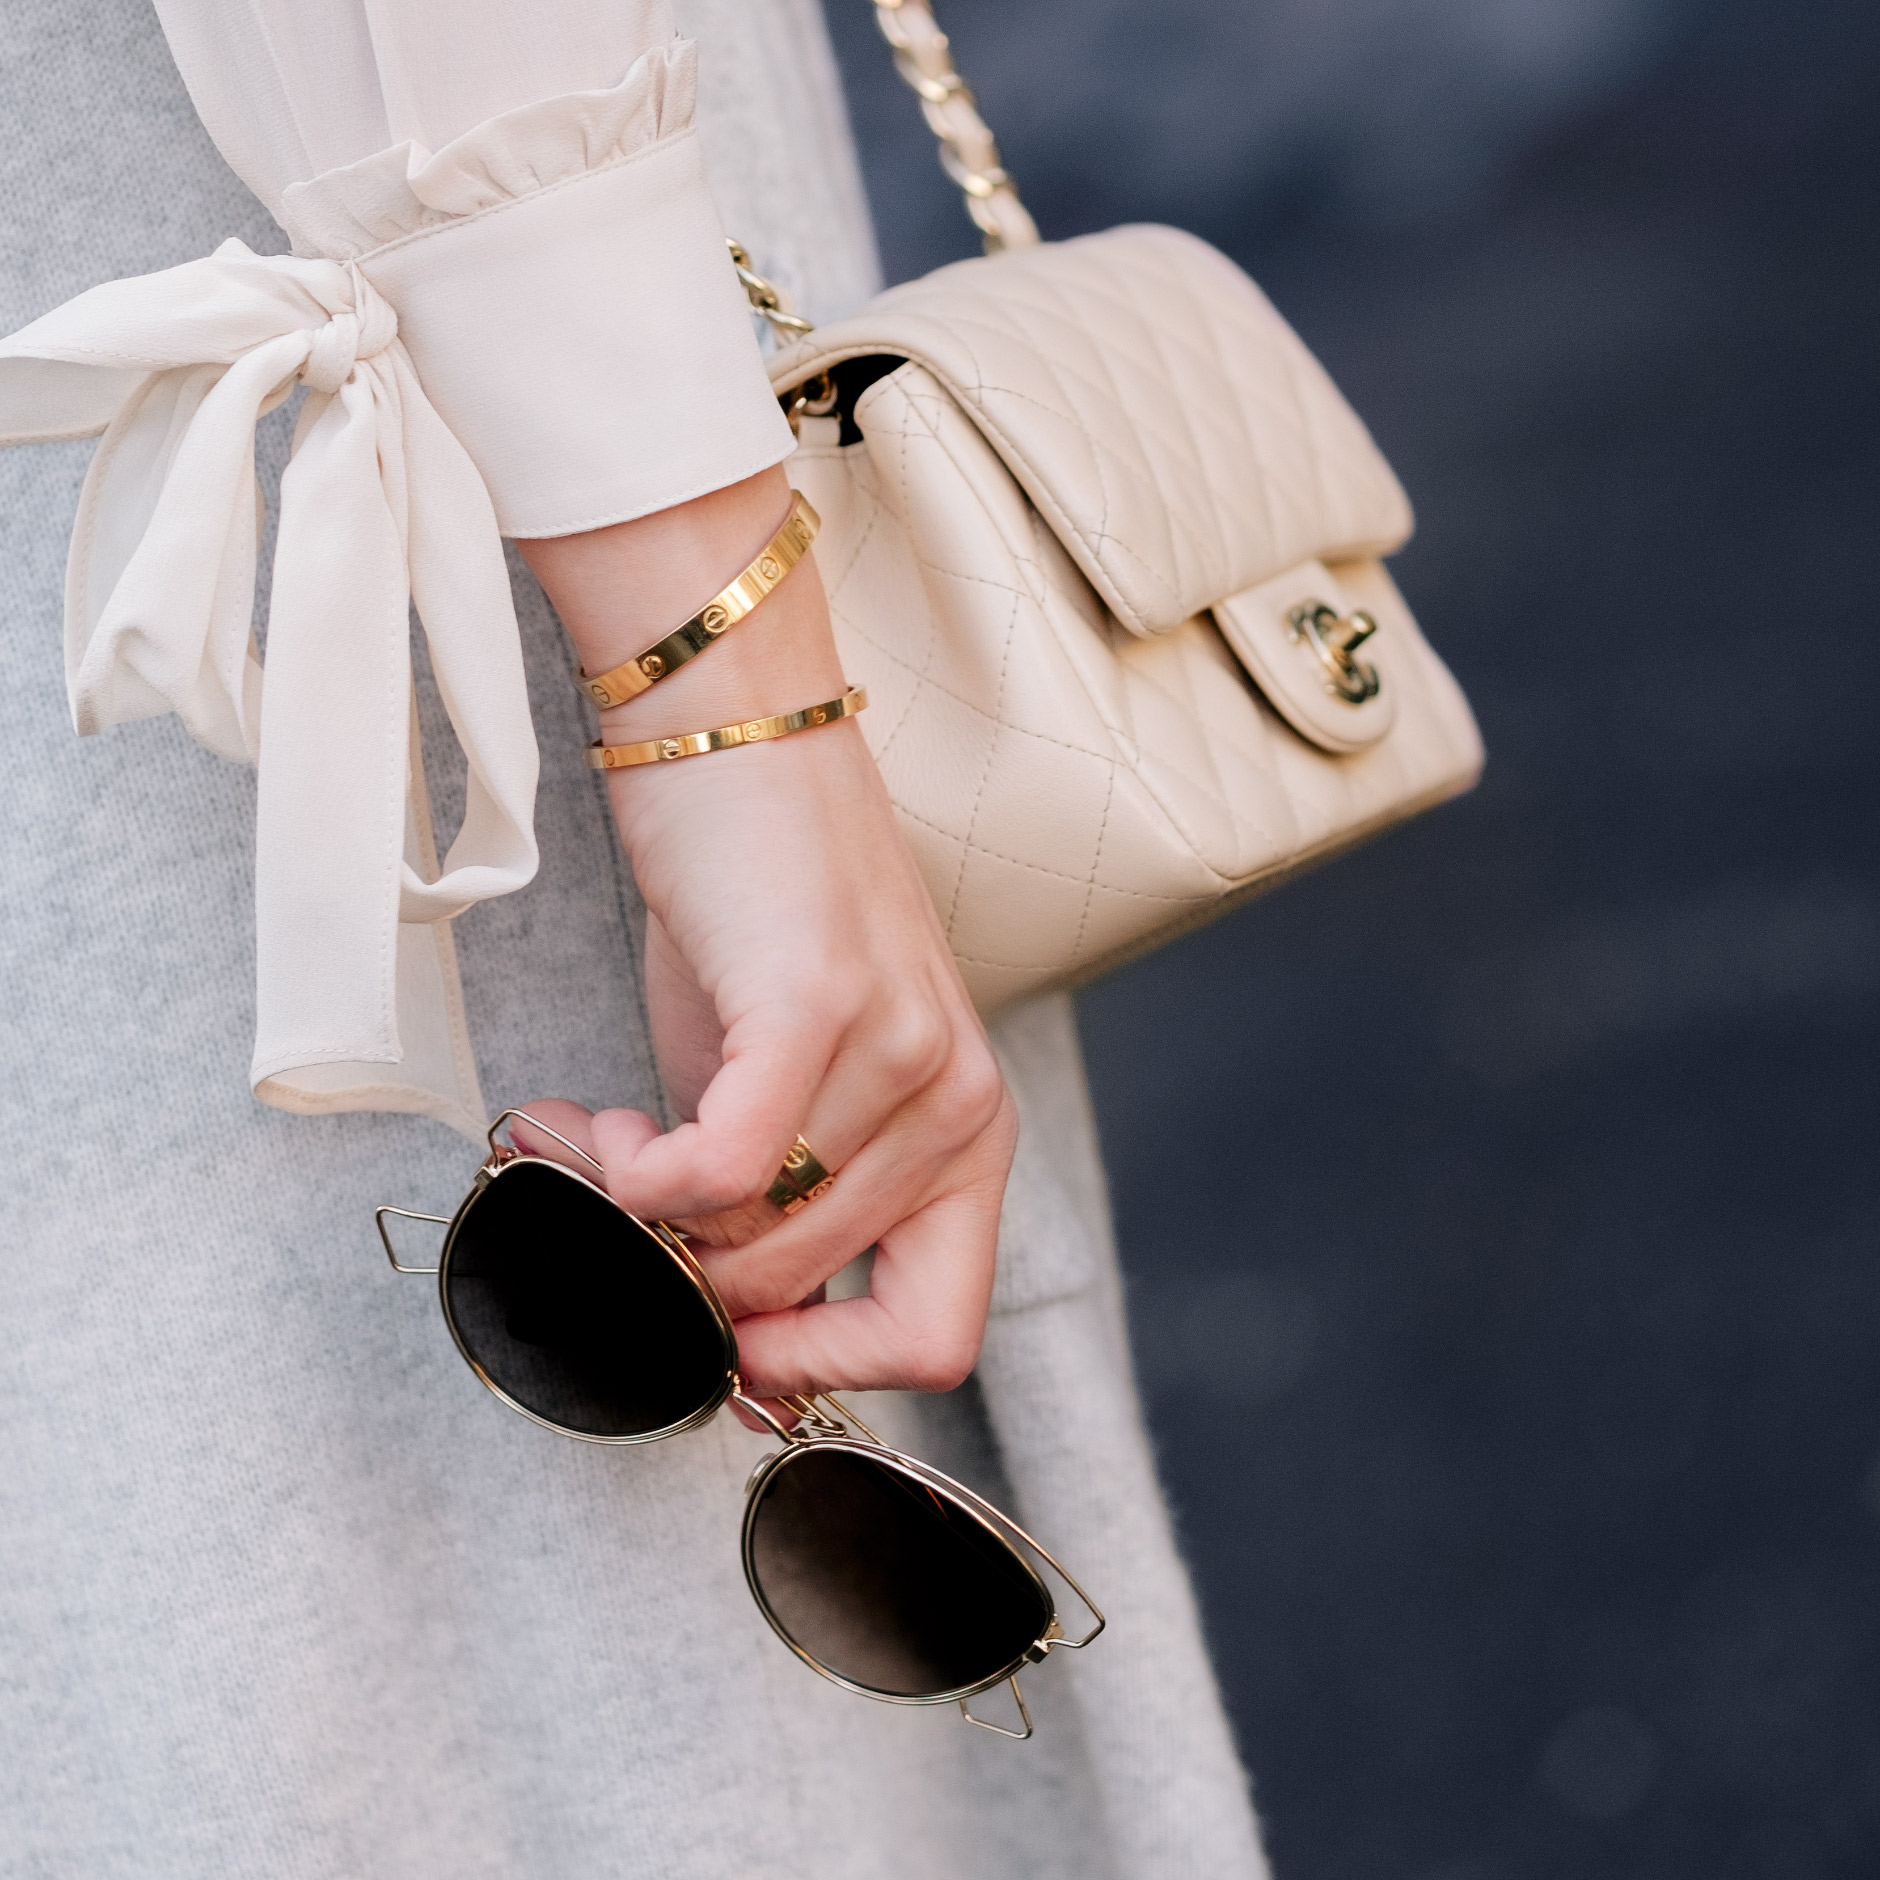 dior-sideral-sunglasses-beige-chanel-mini-3